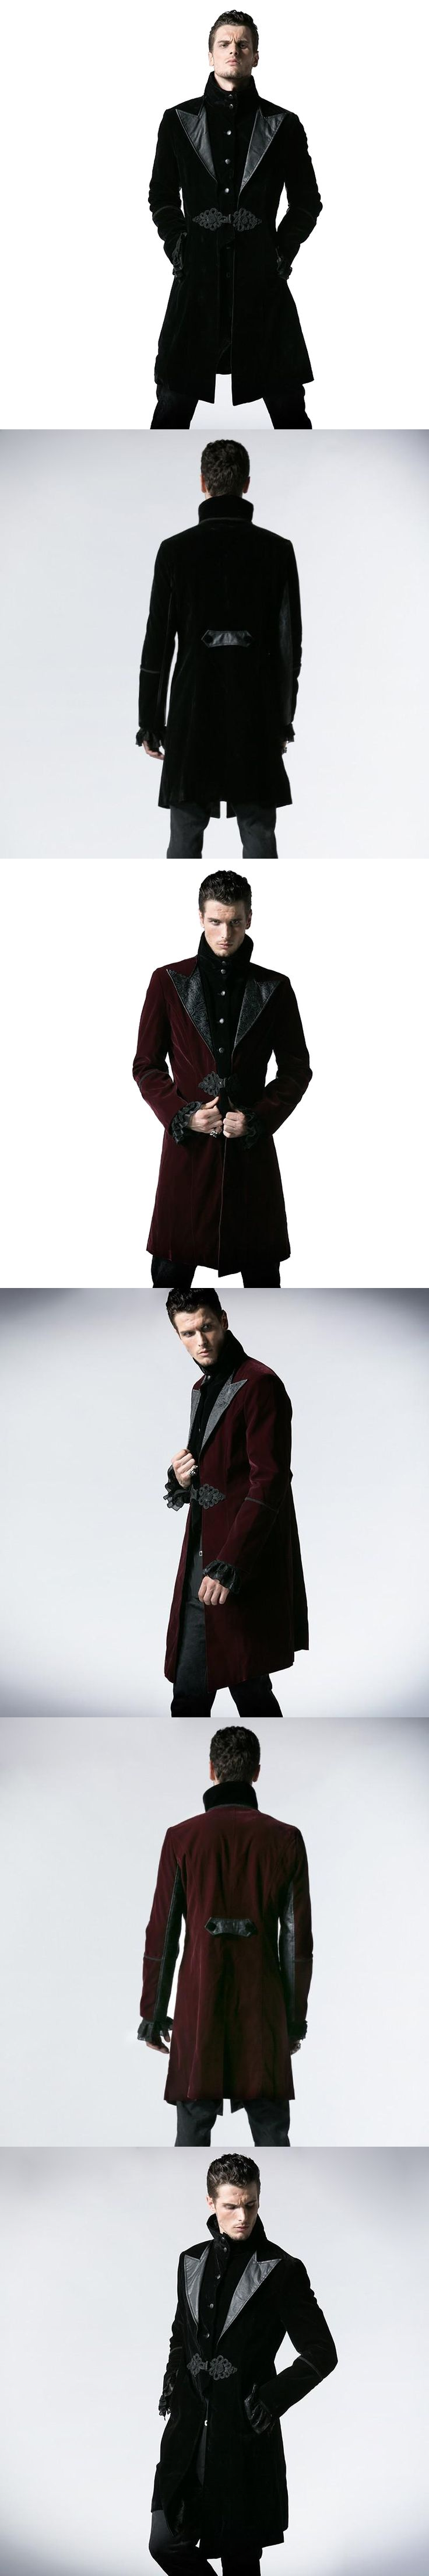 2017 Steampunk Autumn Winter High Collar Corduroy Jacket Thick Windbreakers Gothic Court Fashion Men's Long Duster Coats